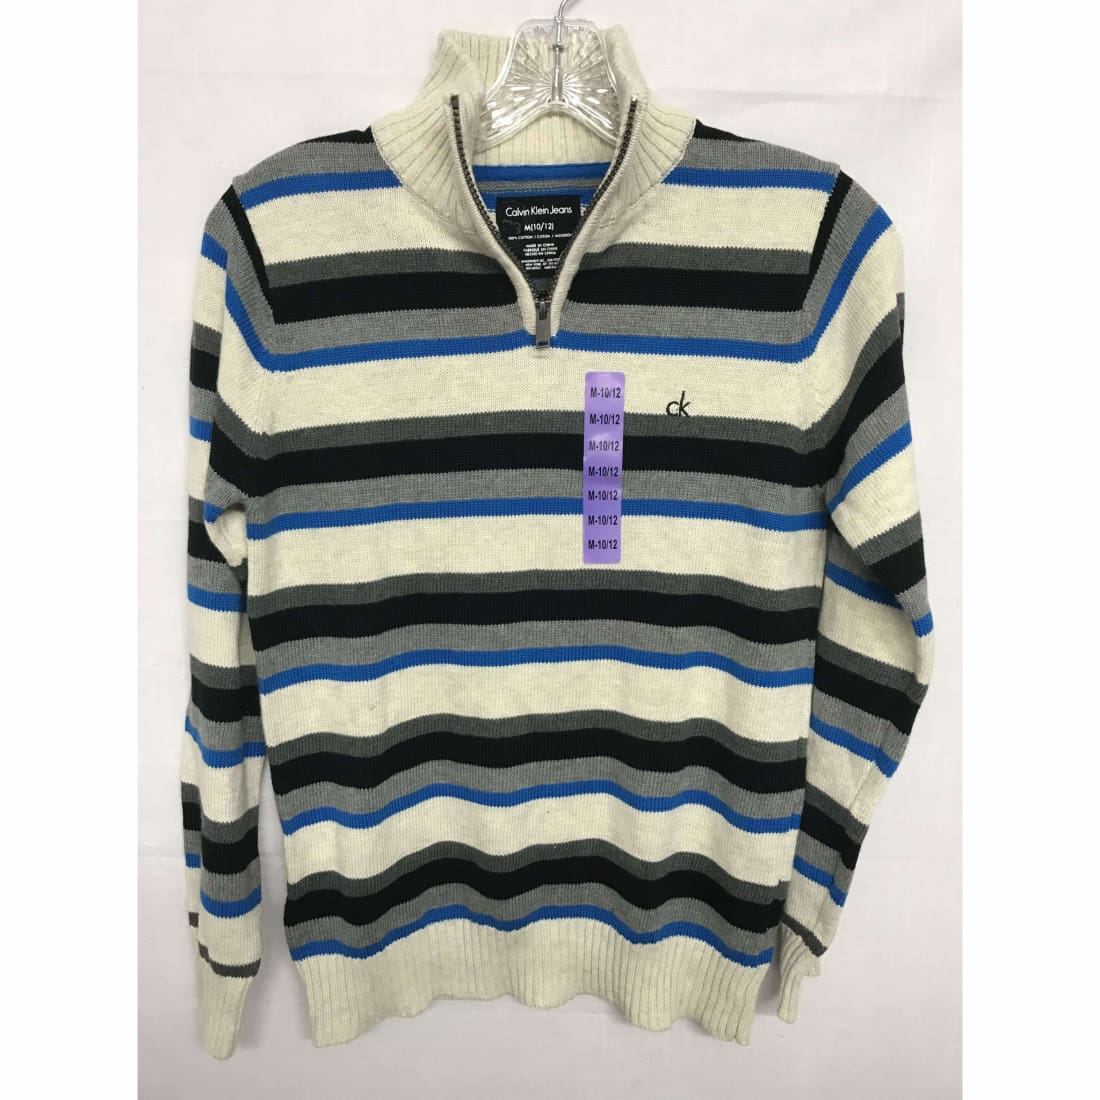 Calvin Klein Boys 1/4 Zip Knit Pullover Sweater 100% Cotton M(10/12) / Oatmealh Sweaters